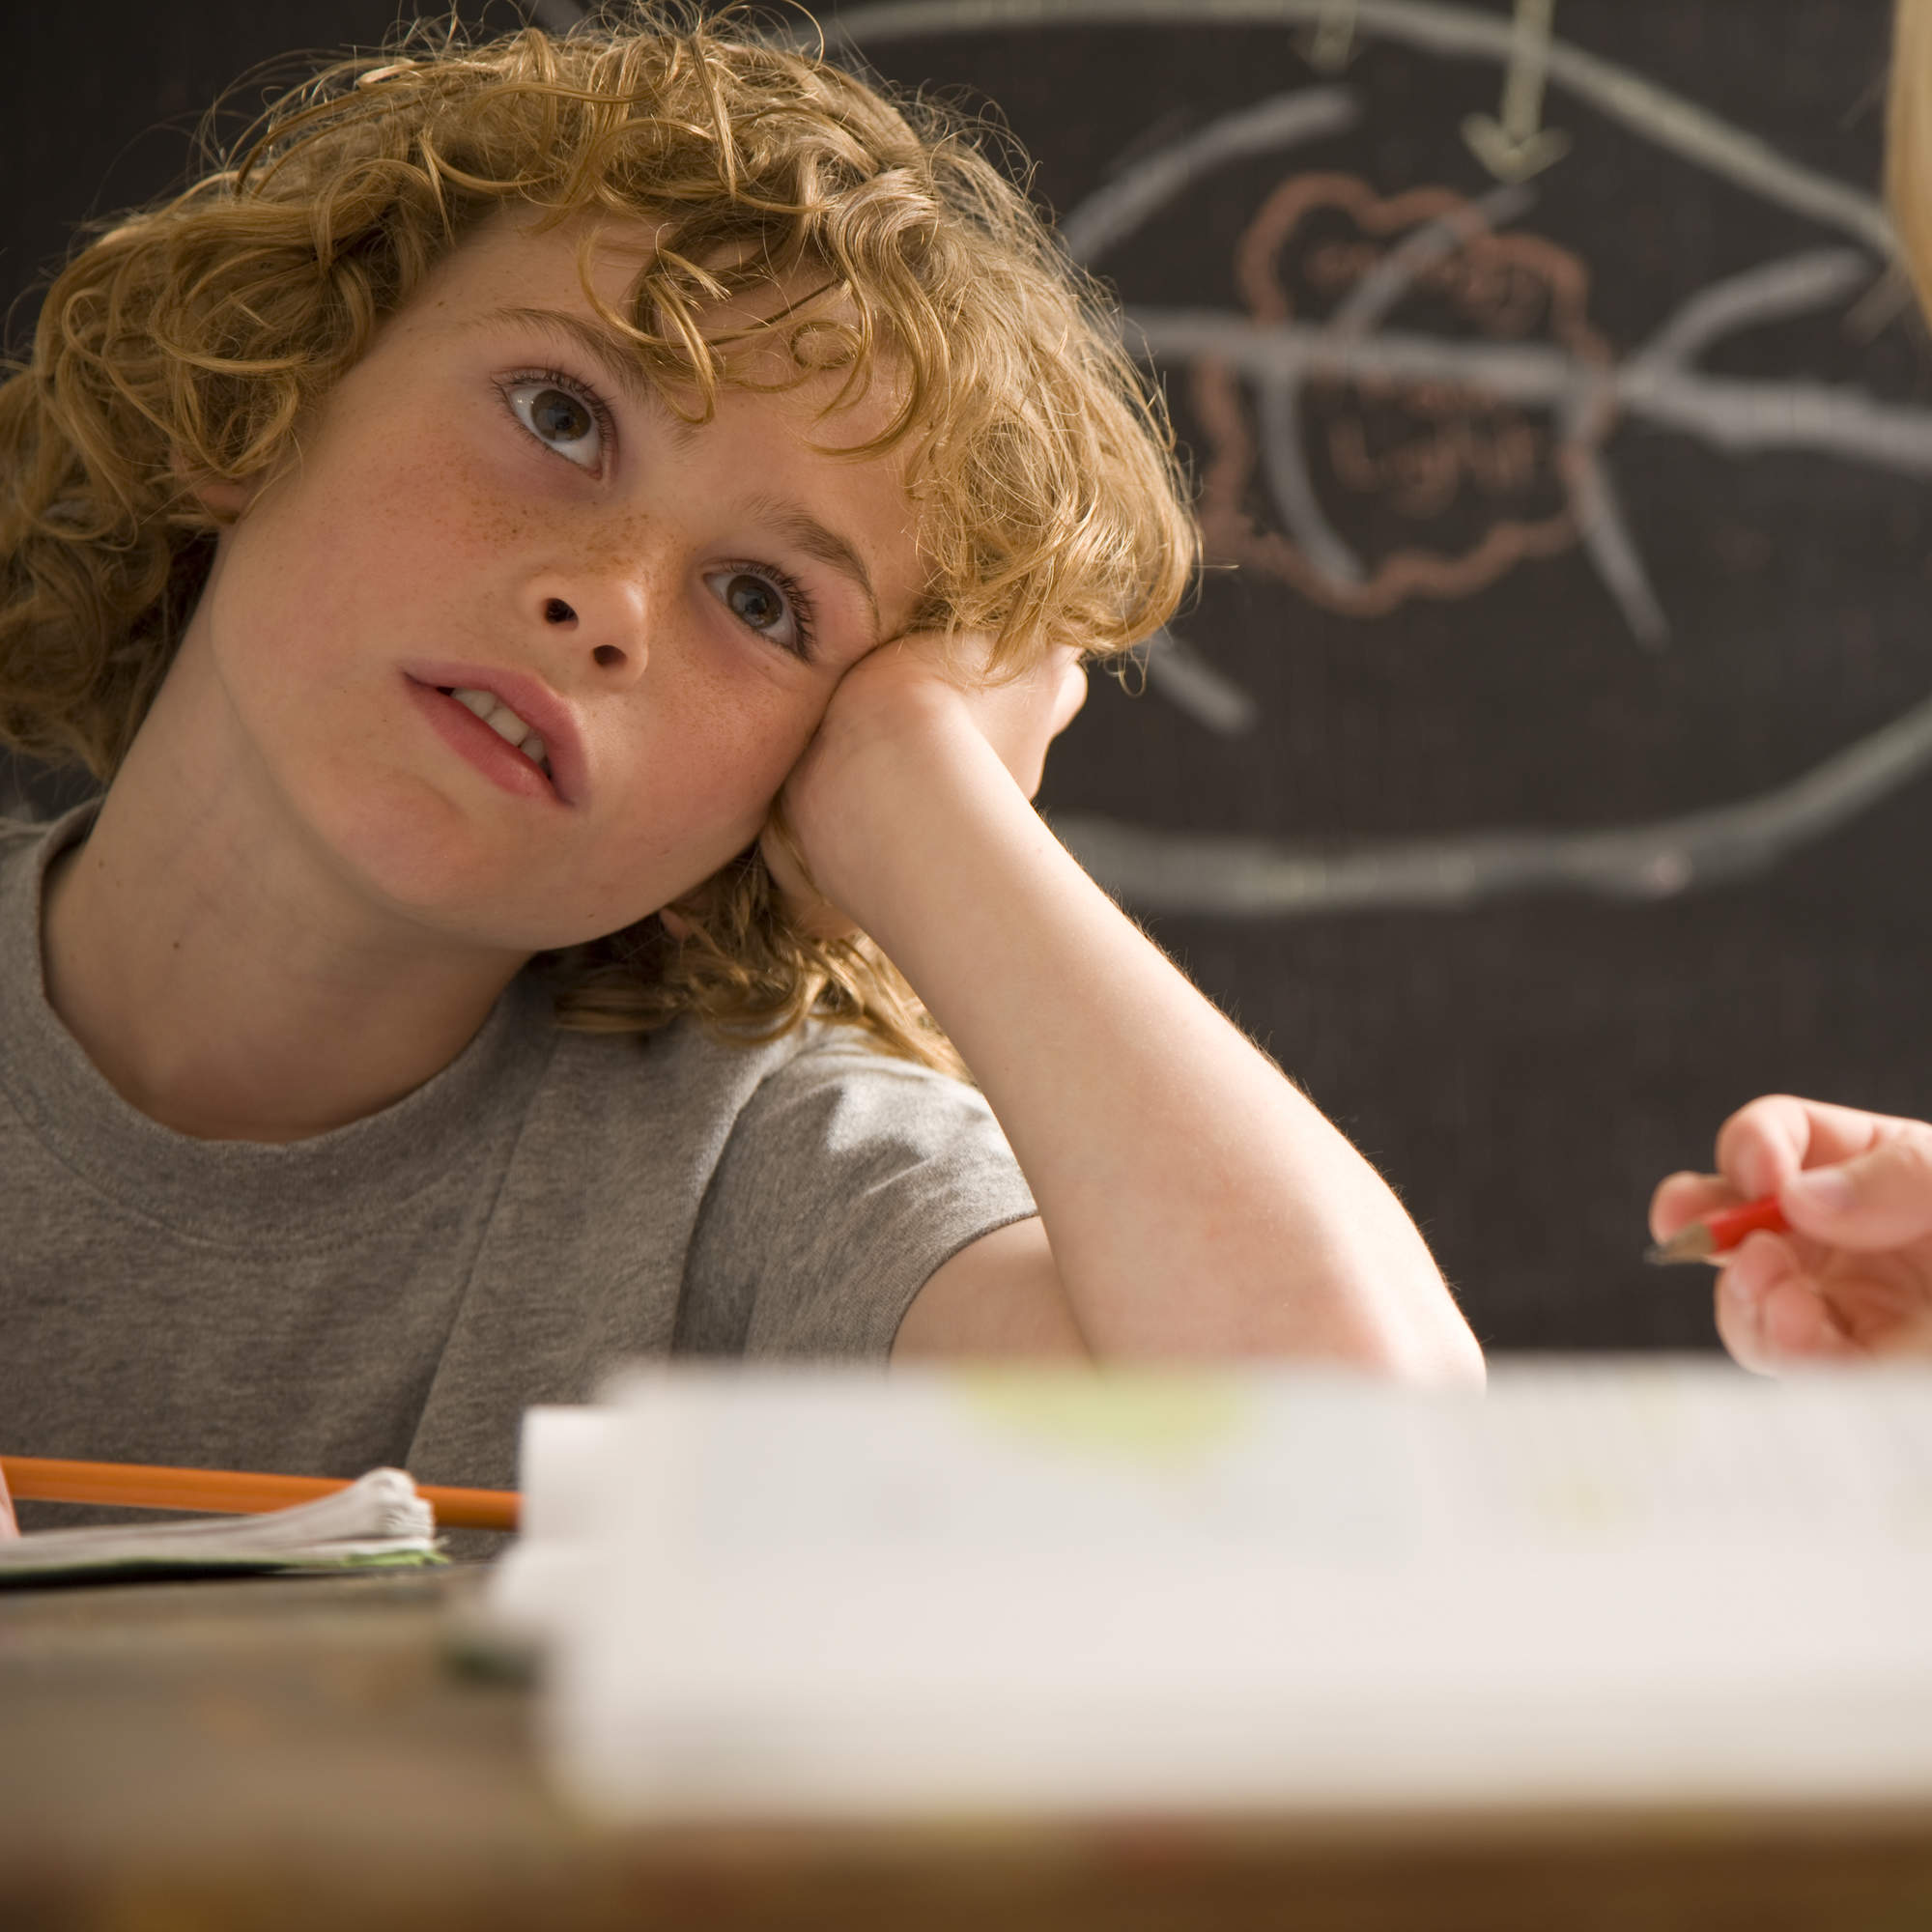 What Causes ADHD? 12 Myths And Facts